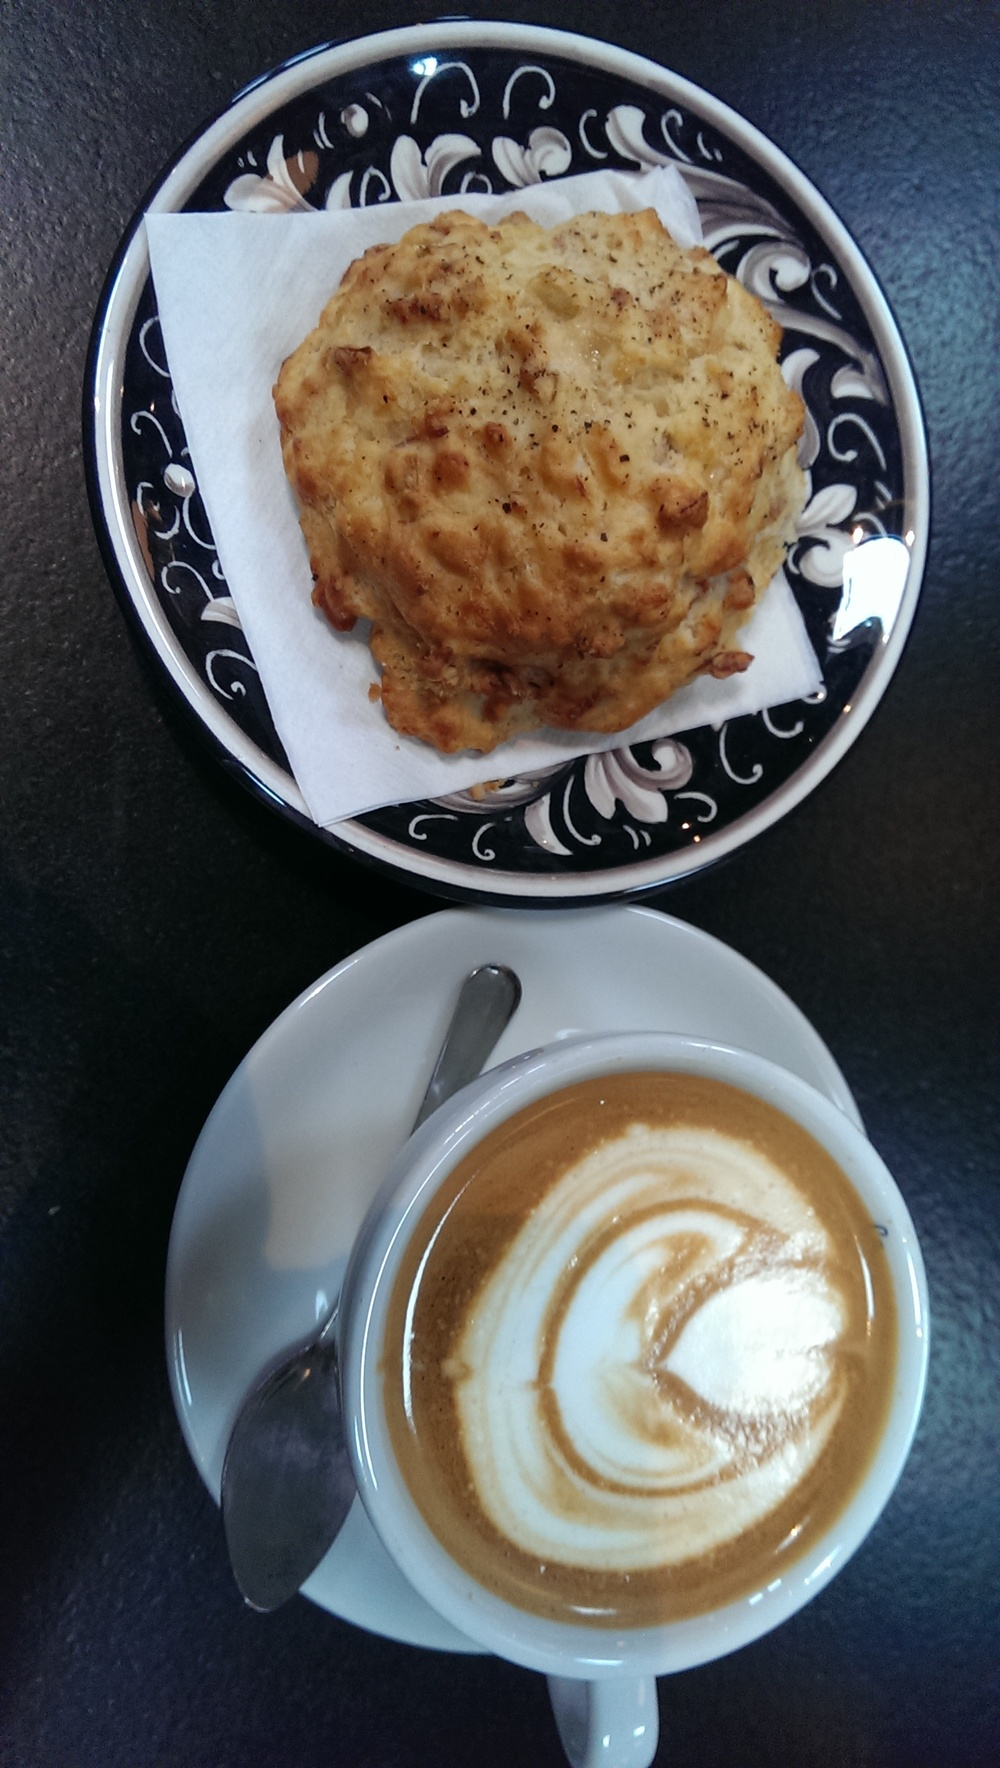 cappuccino and serrano ham biscuit